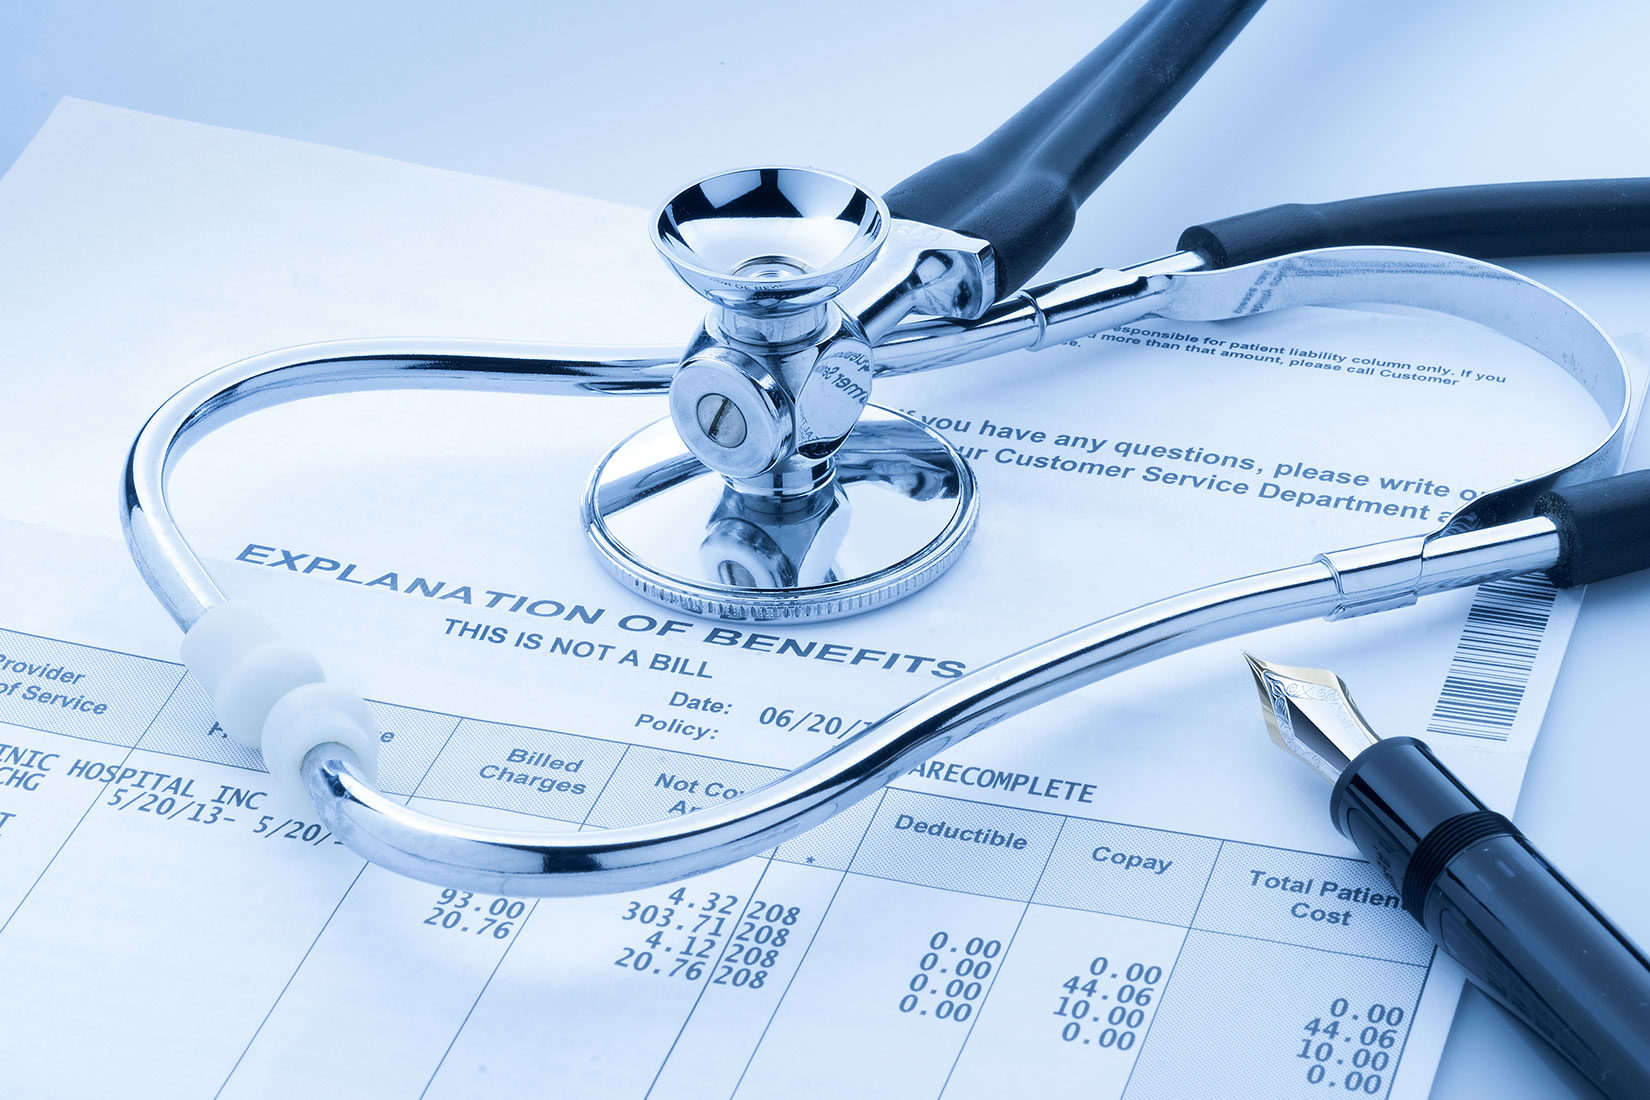 CT businesses, employees face hikes in health care premiums